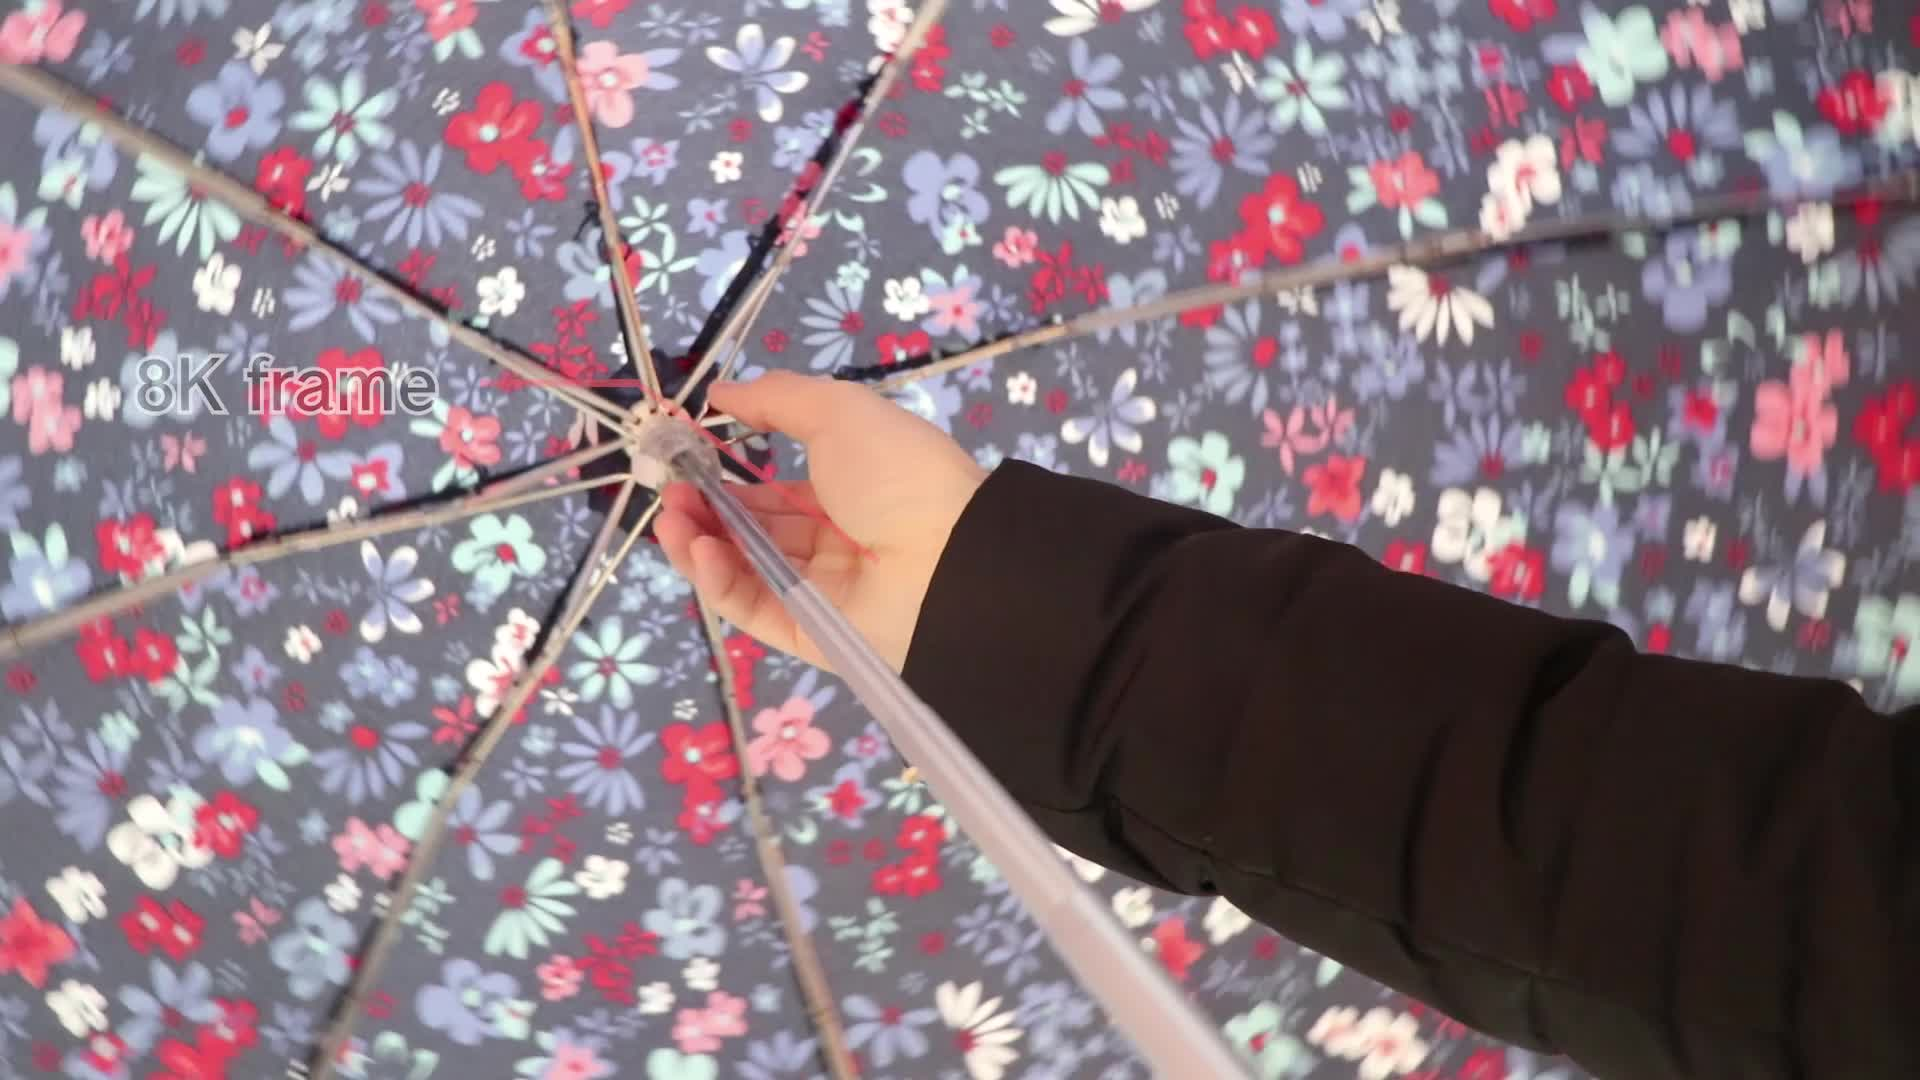 RST flower design five folding umbrella quality chinese products small umbrella